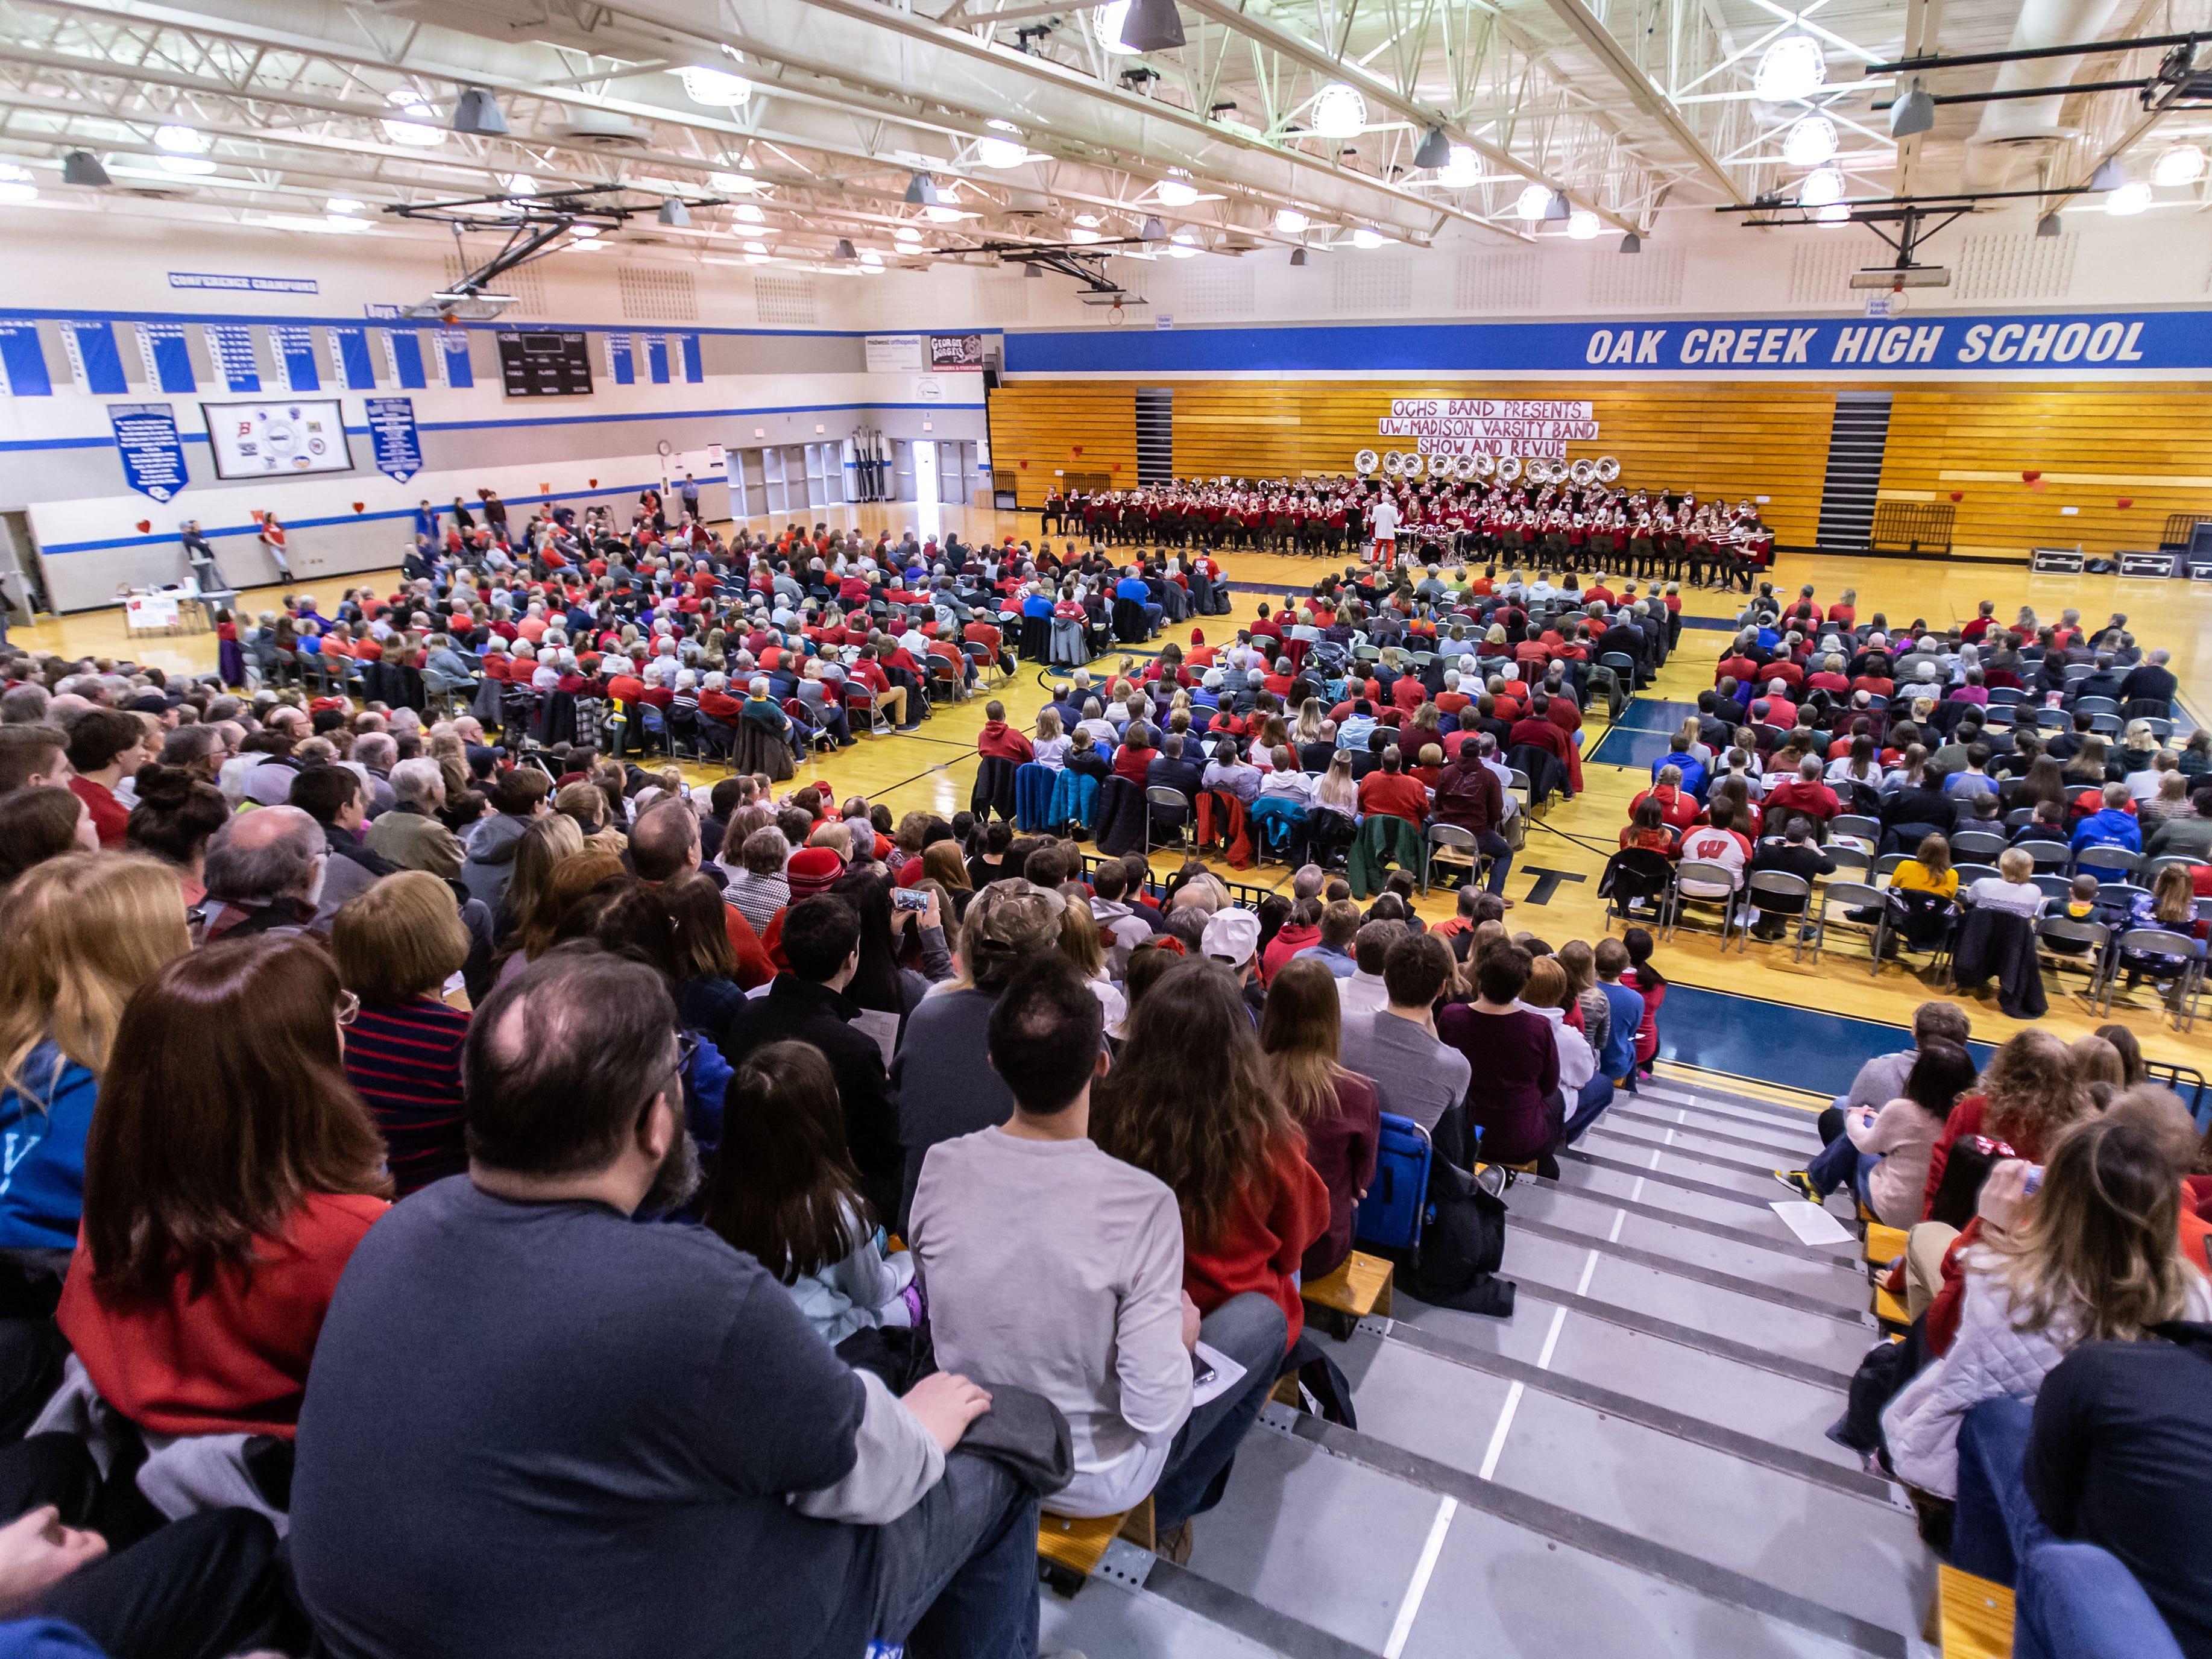 """The University of Wisconsin-Madison Varsity Band performs it's 23rd """"Show and Revue"""" at the Oak Creek High School gymnasium on Sunday, Feb. 10, 2019."""